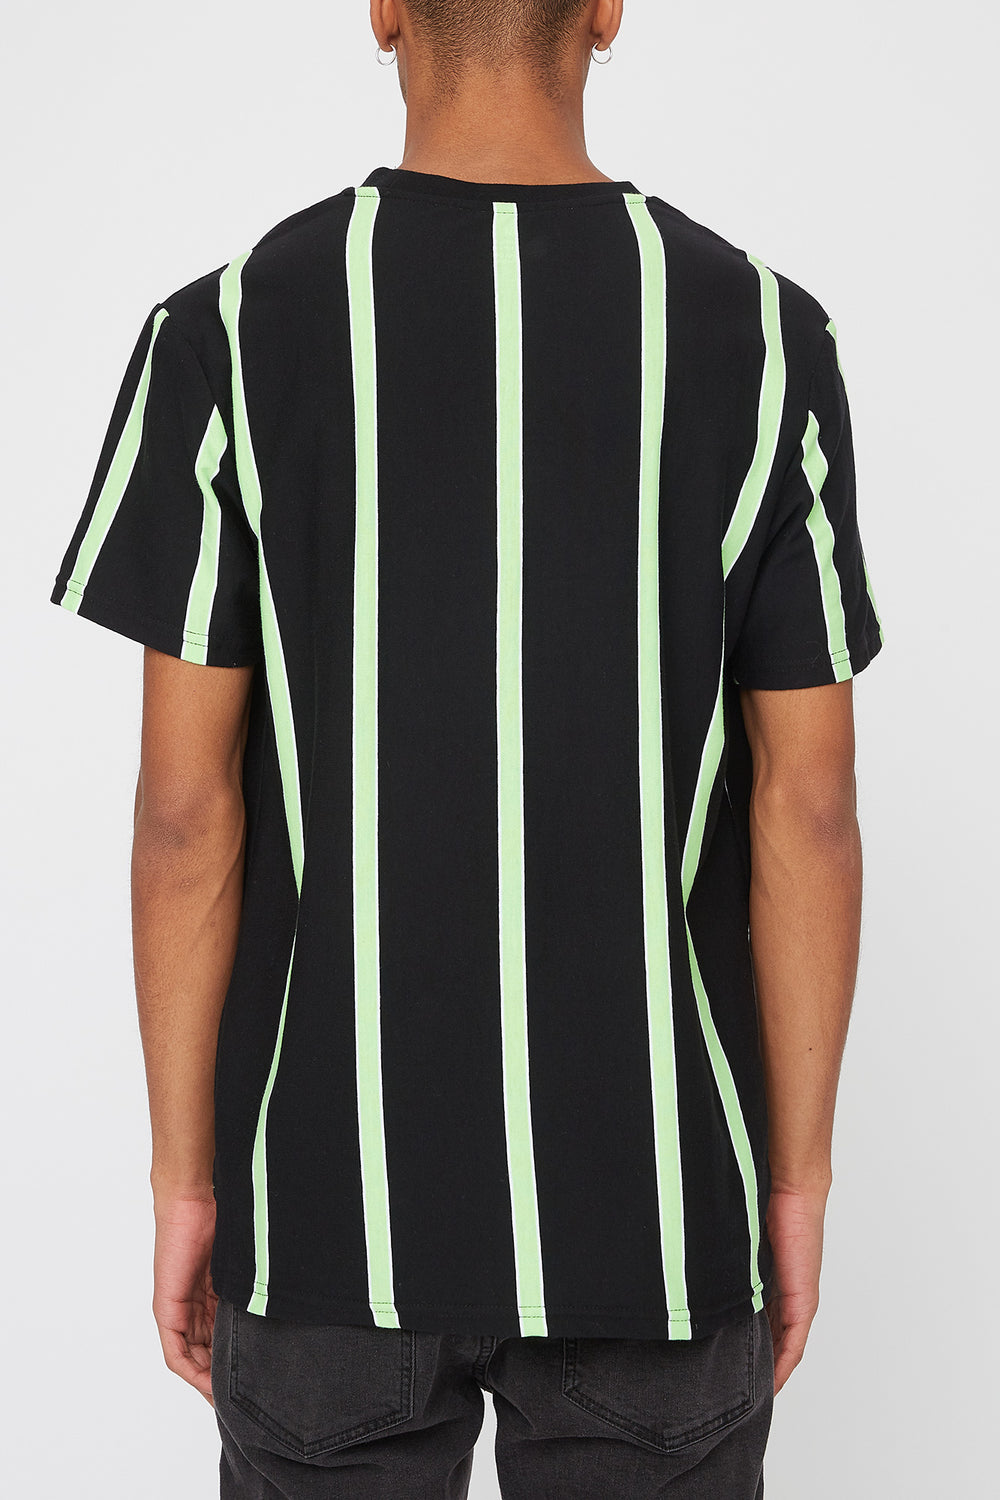 Young & Reckless Mens Neon Striped T-Shirt Black